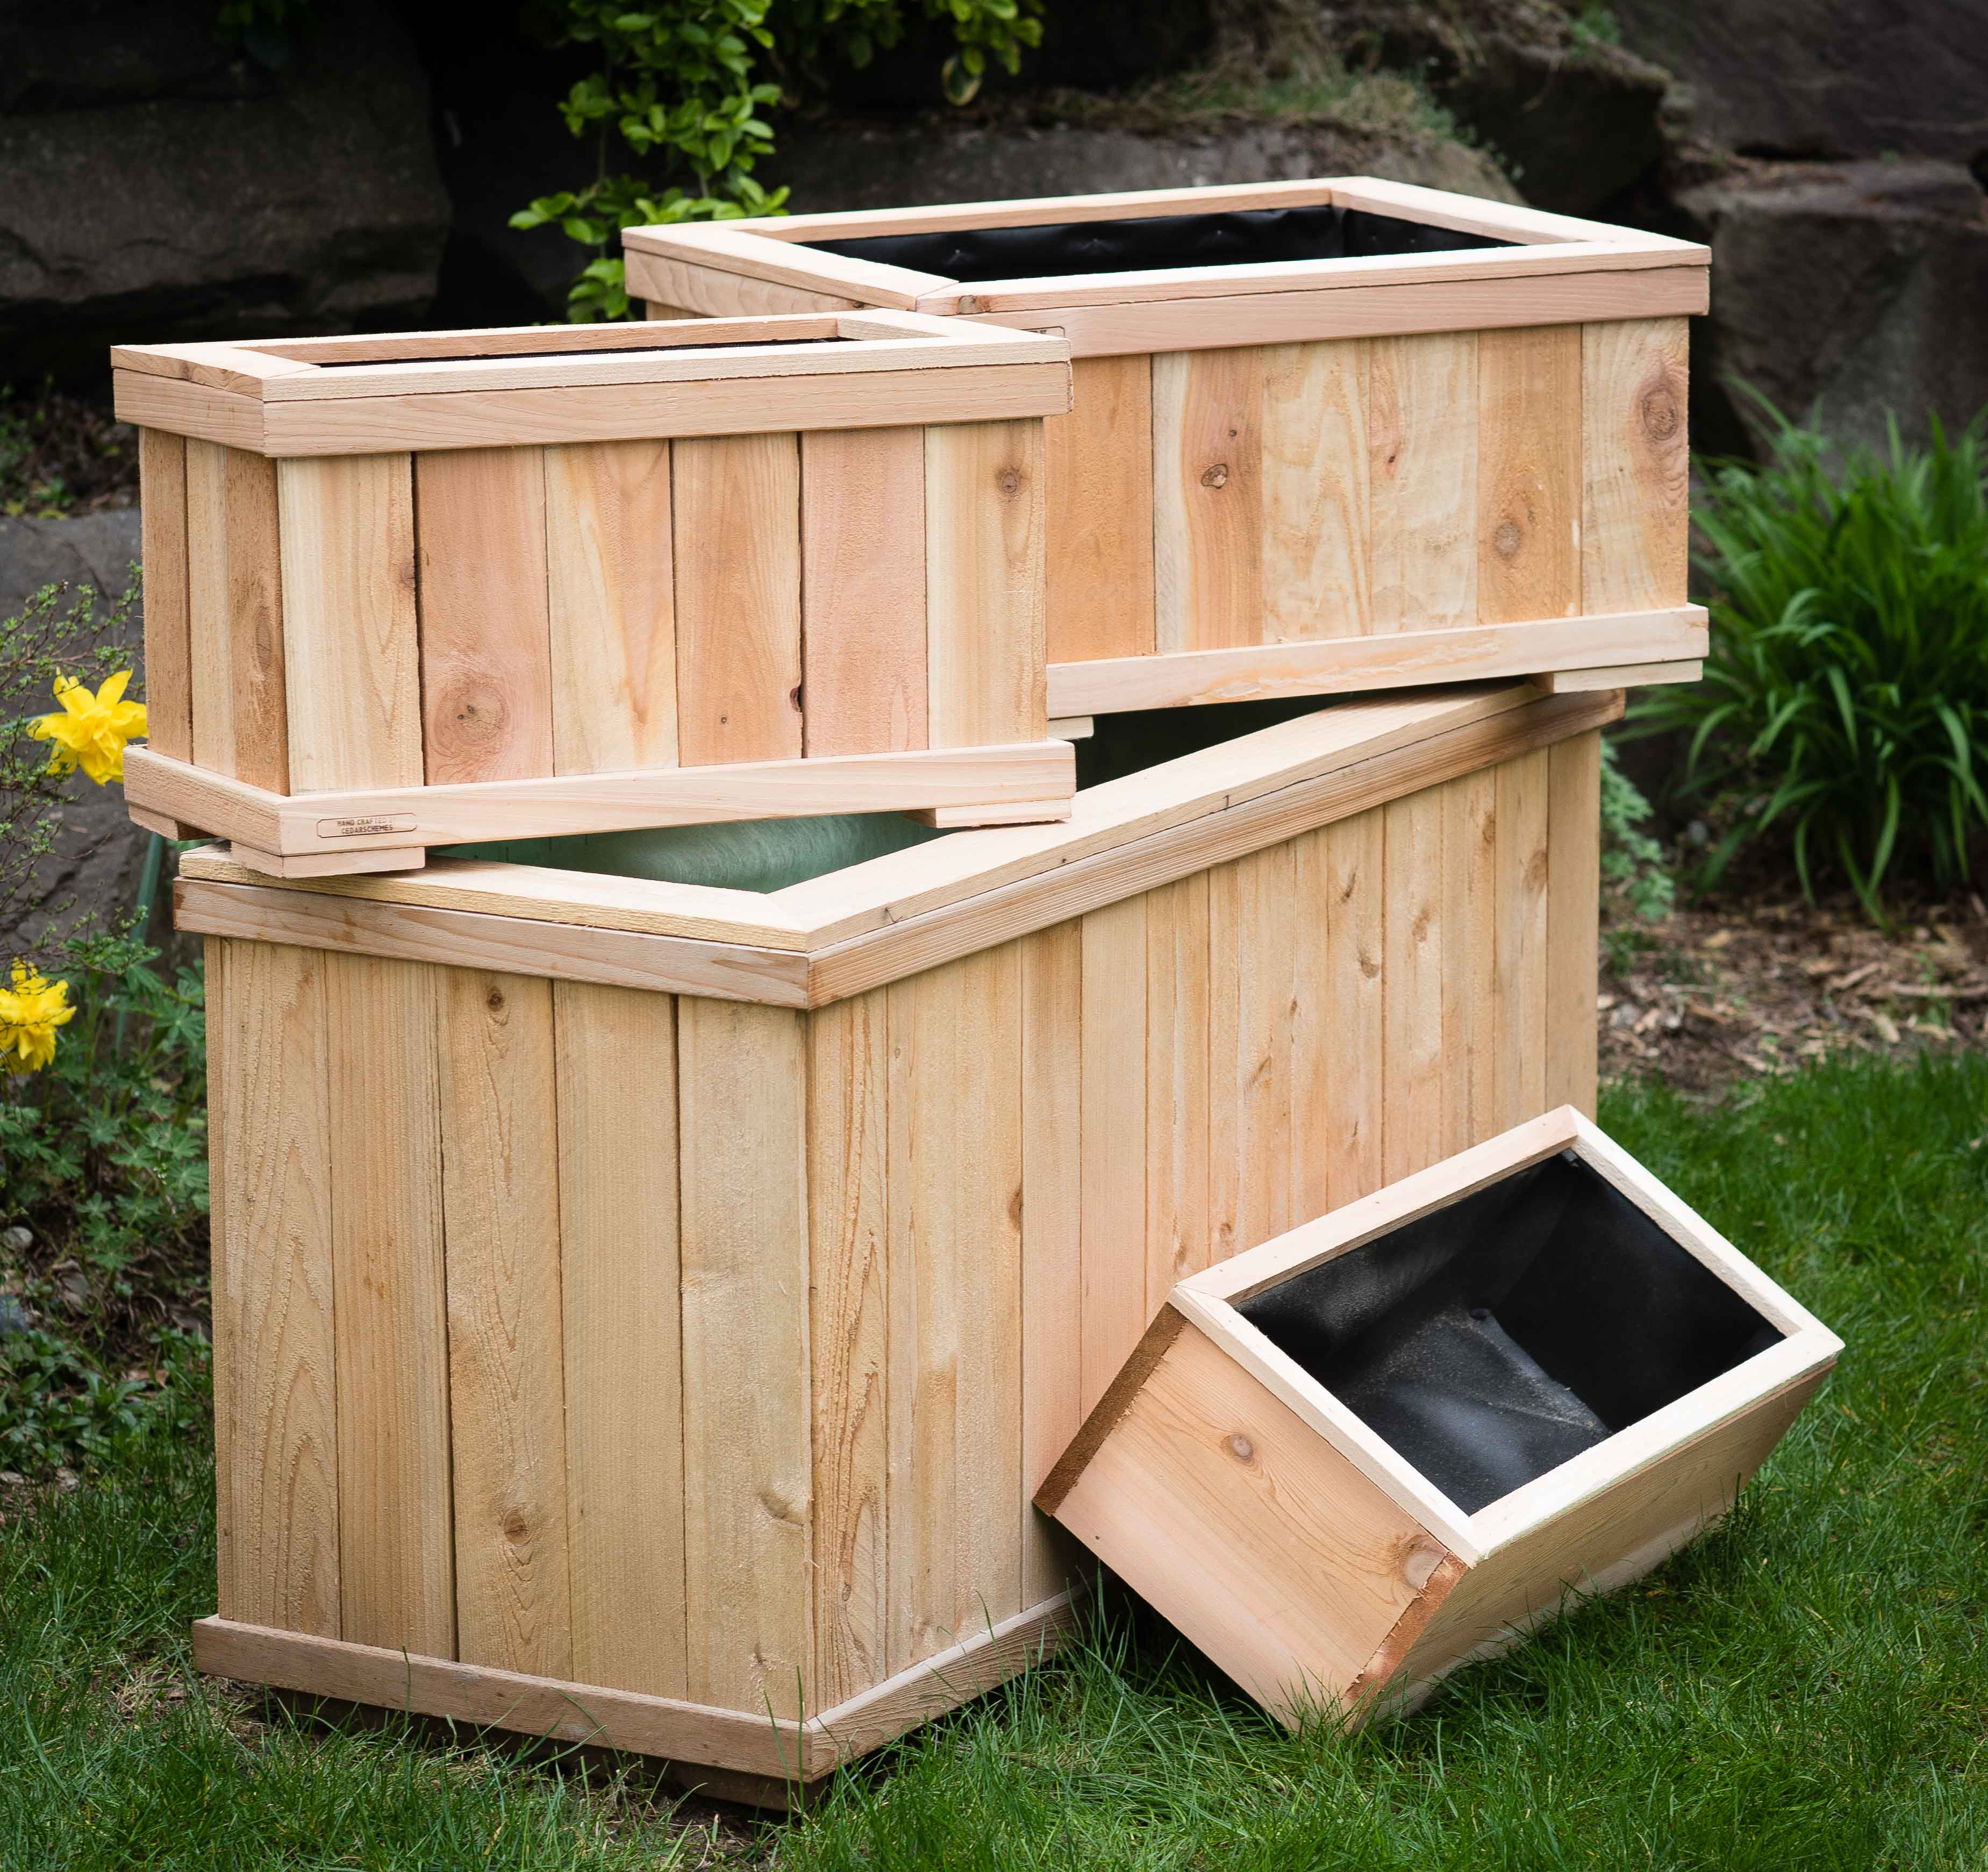 our cedar planters handcrafted cedar planter boxes come in standard and custom sizing